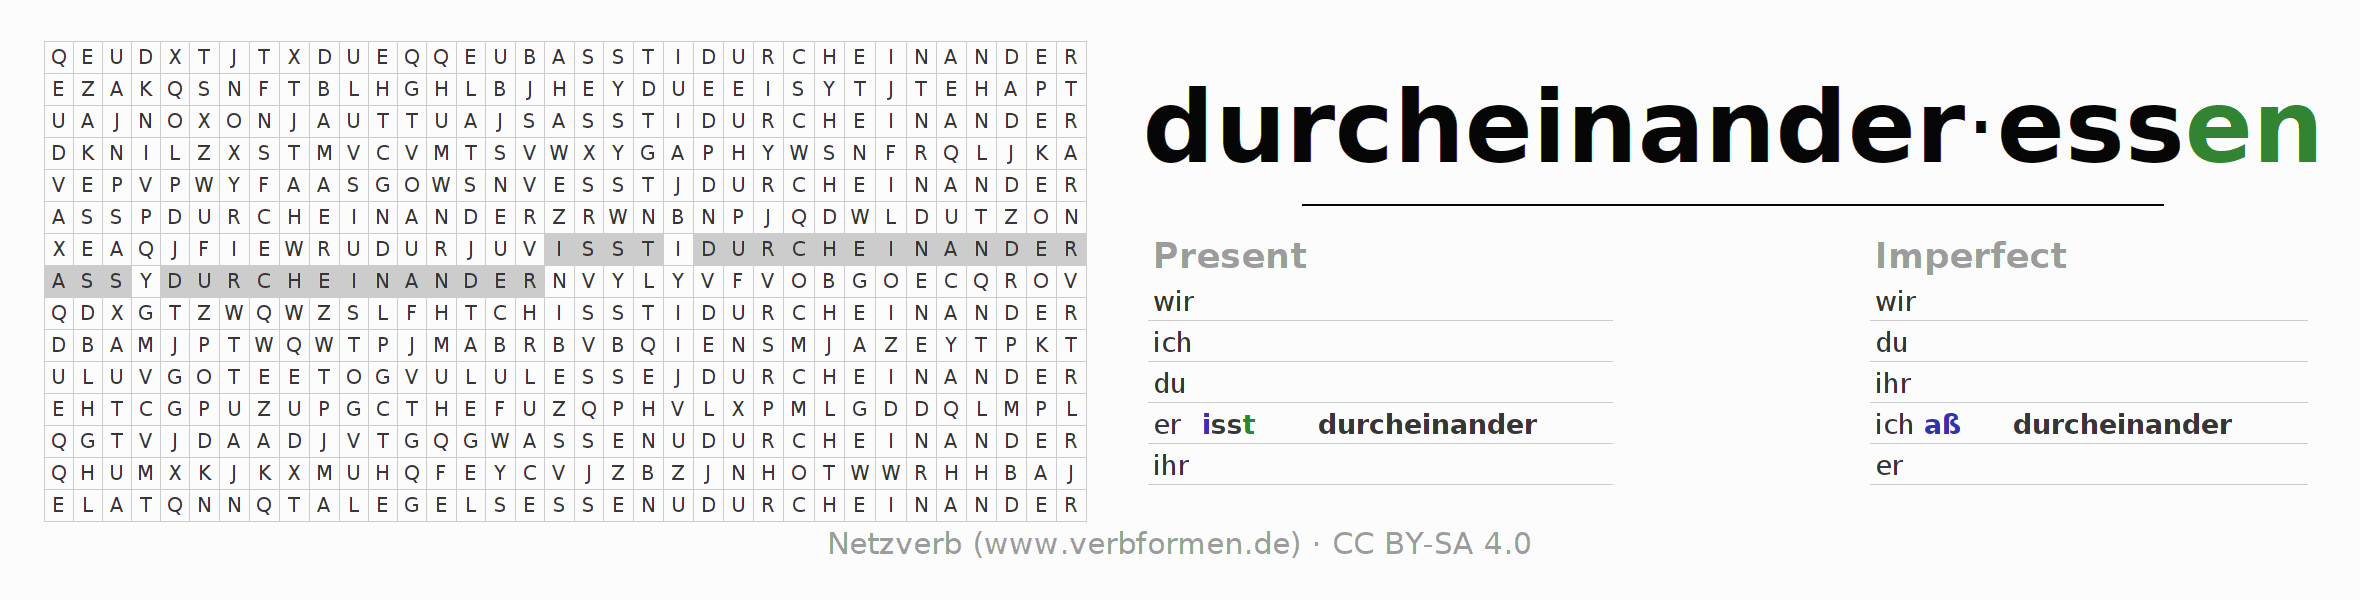 Word search puzzle for the conjugation of the verb durcheinanderessen